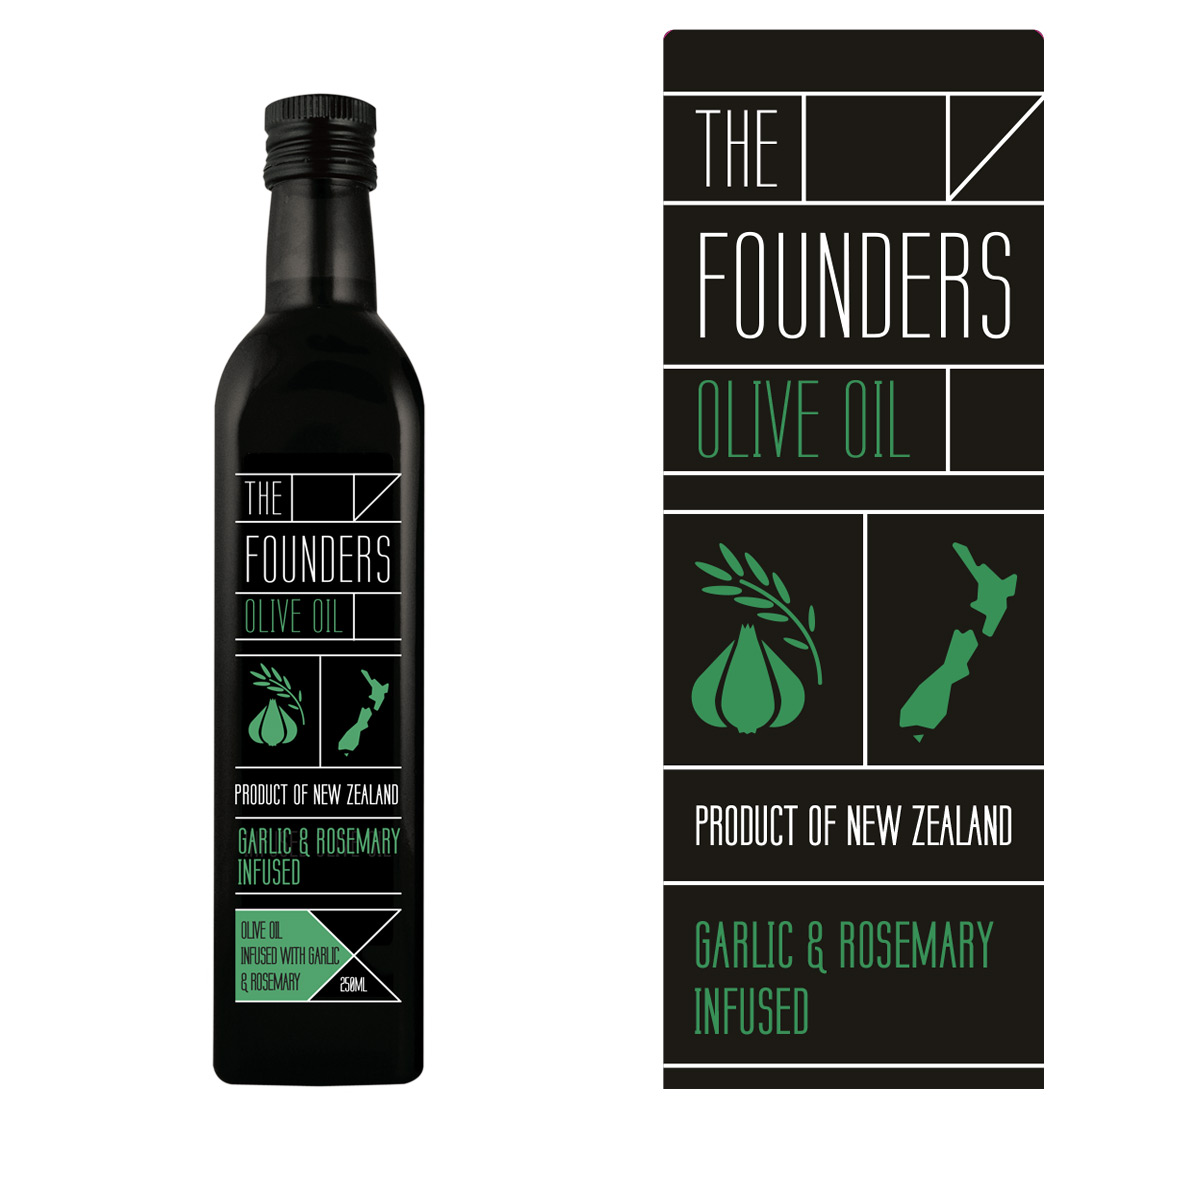 The-Founders-Olive-Oil-Garlic&Rosemary-250ml-1200×1200